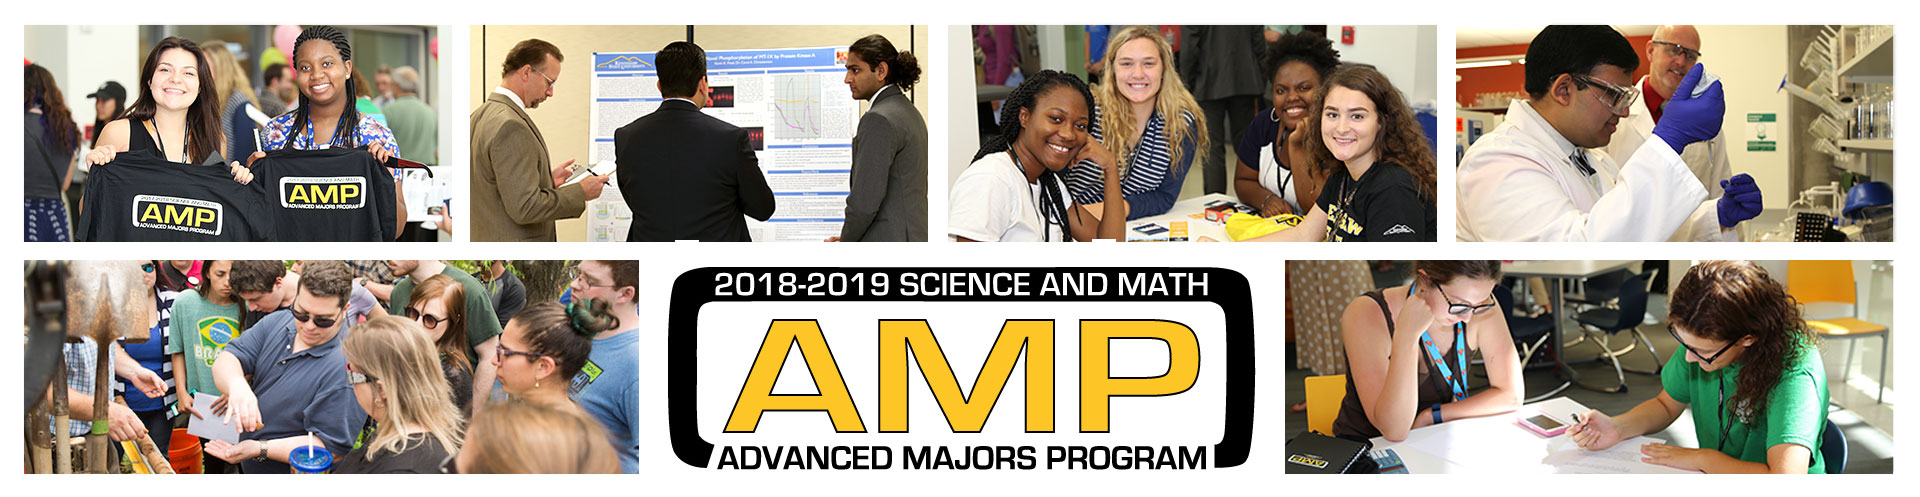 Photo collage of students in the Advanced Majors Program